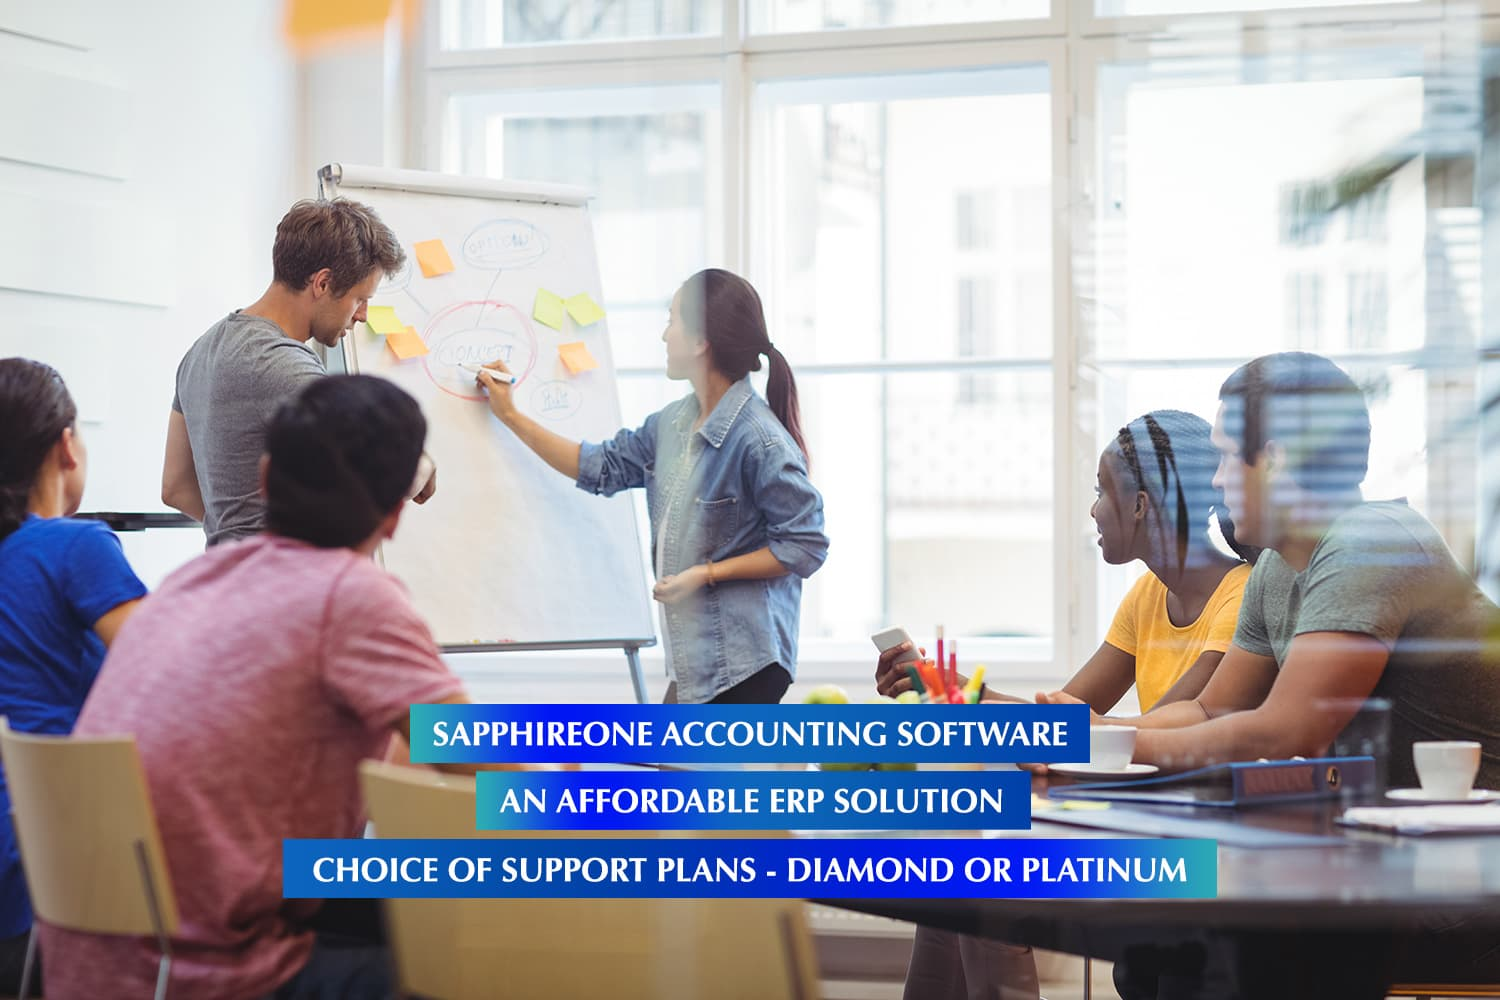 SapphireOne Business Accounting Software is an affordable ERP solution with a choice of support plans - Diammond or Platinum